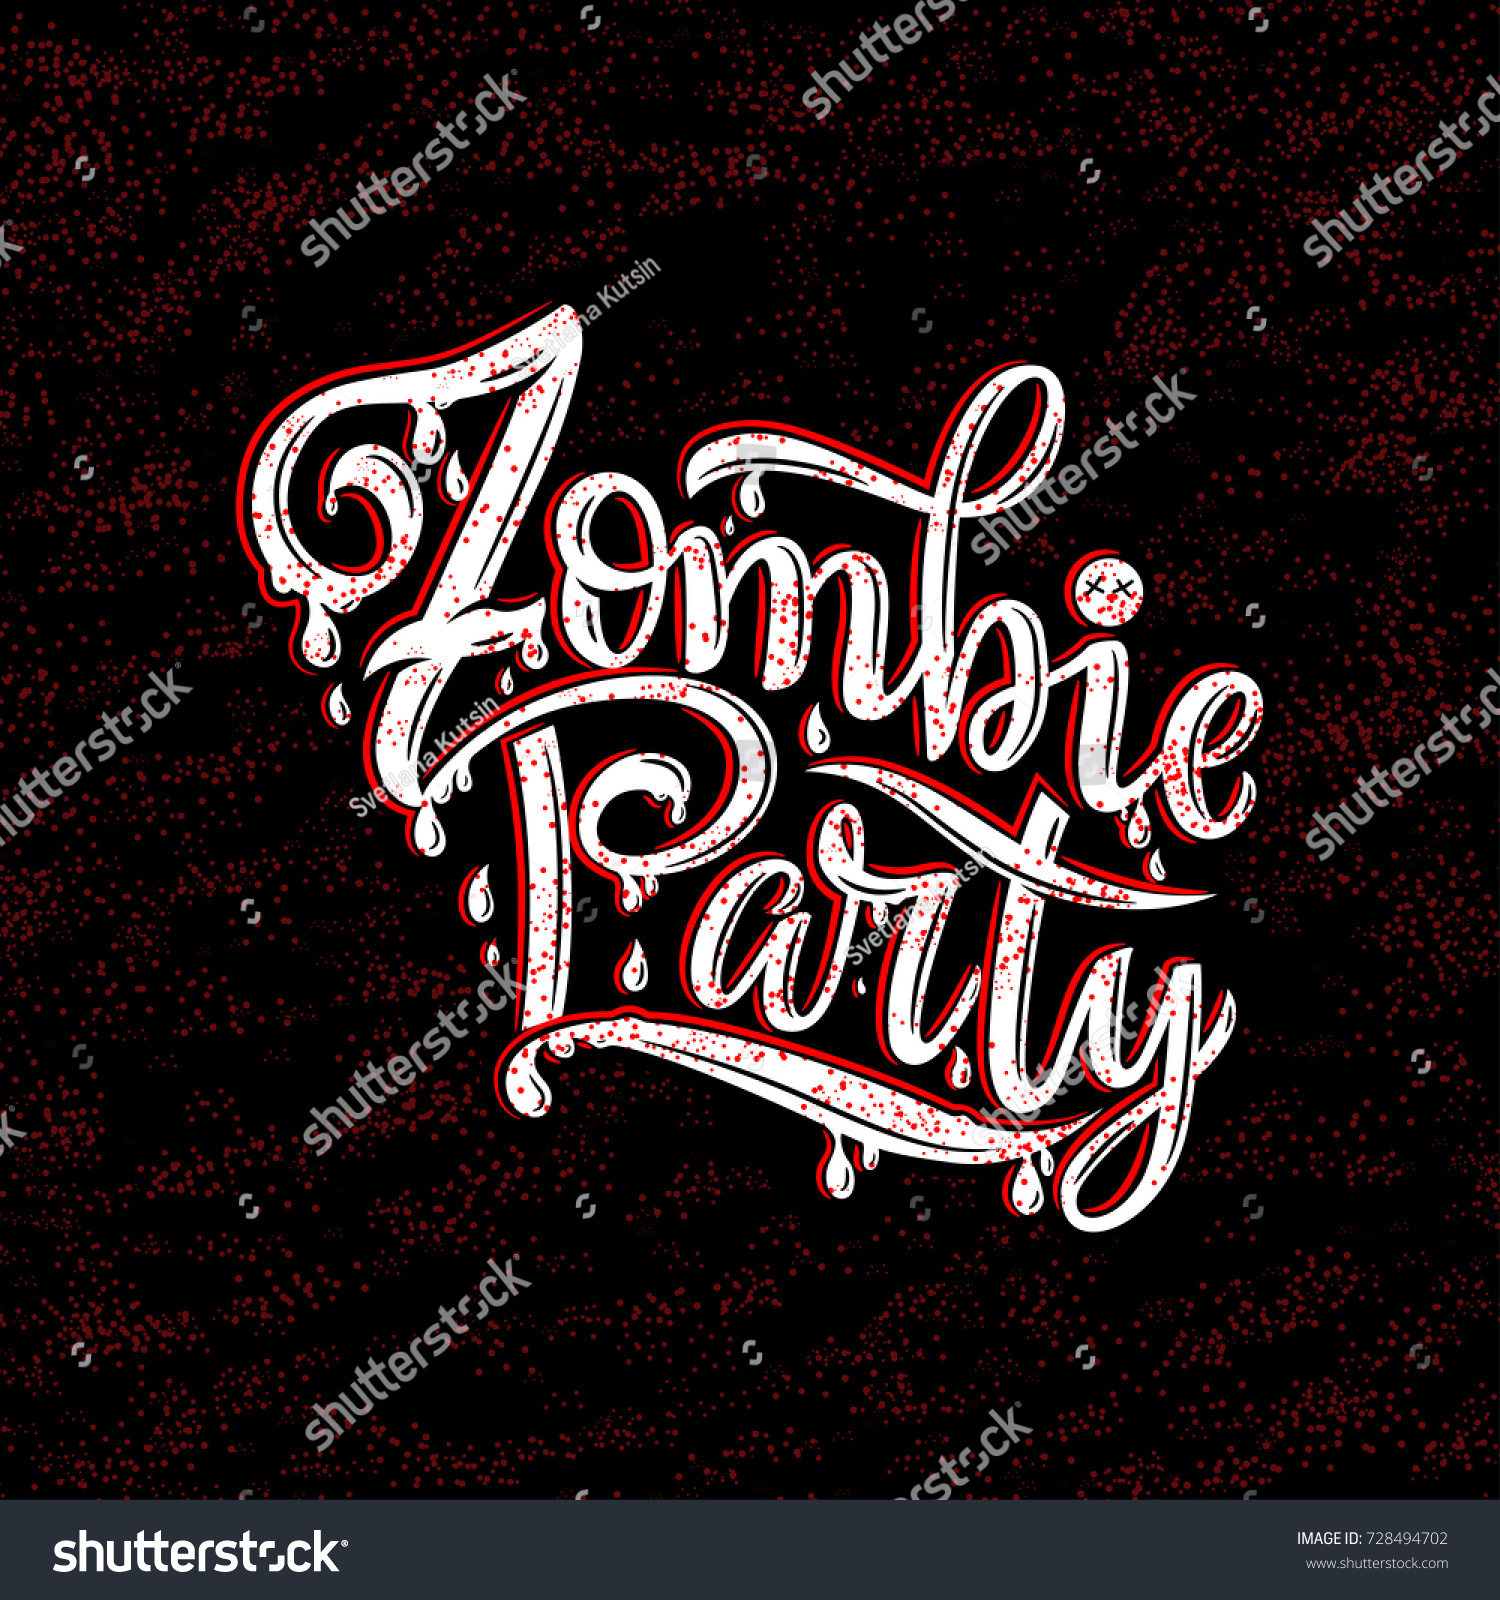 Invitation letter template alesiinfo format for character zombie party invitations alesiinfo shares certificate template stock vector vector illustration of zombie party text for yadclub Choice Image